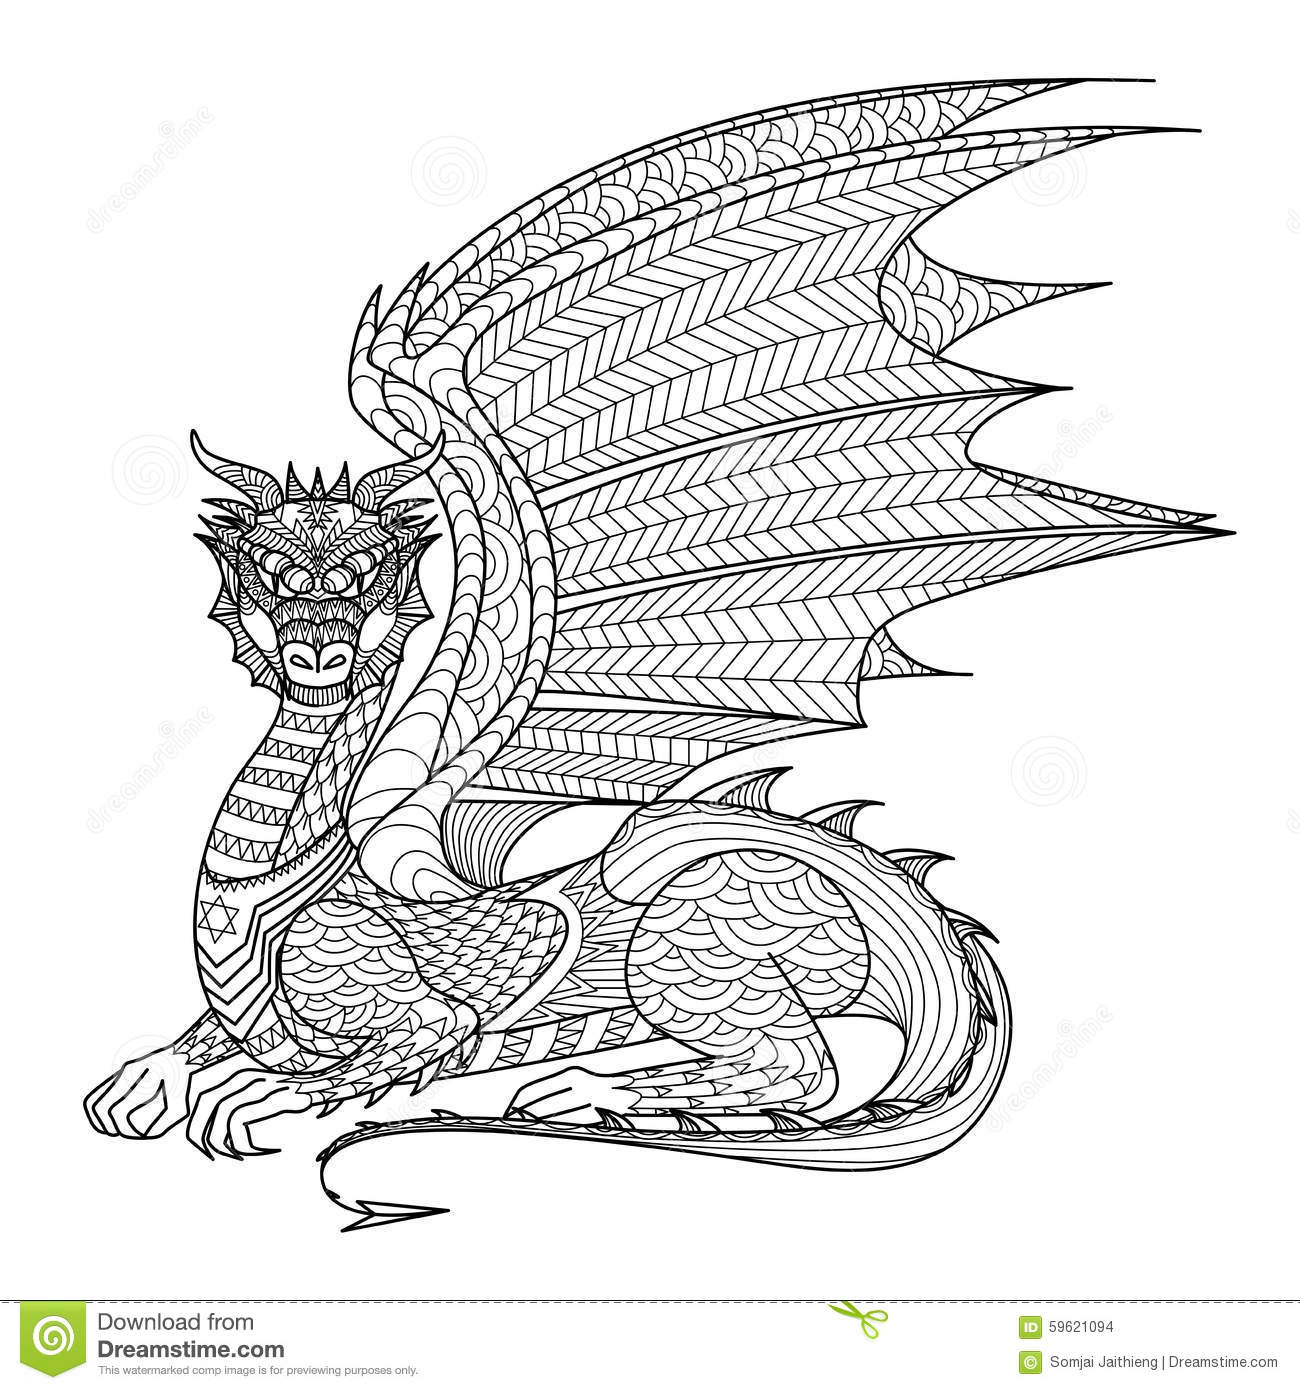 Drawing Dragon For Coloring Book Stock Vector Illustration Of